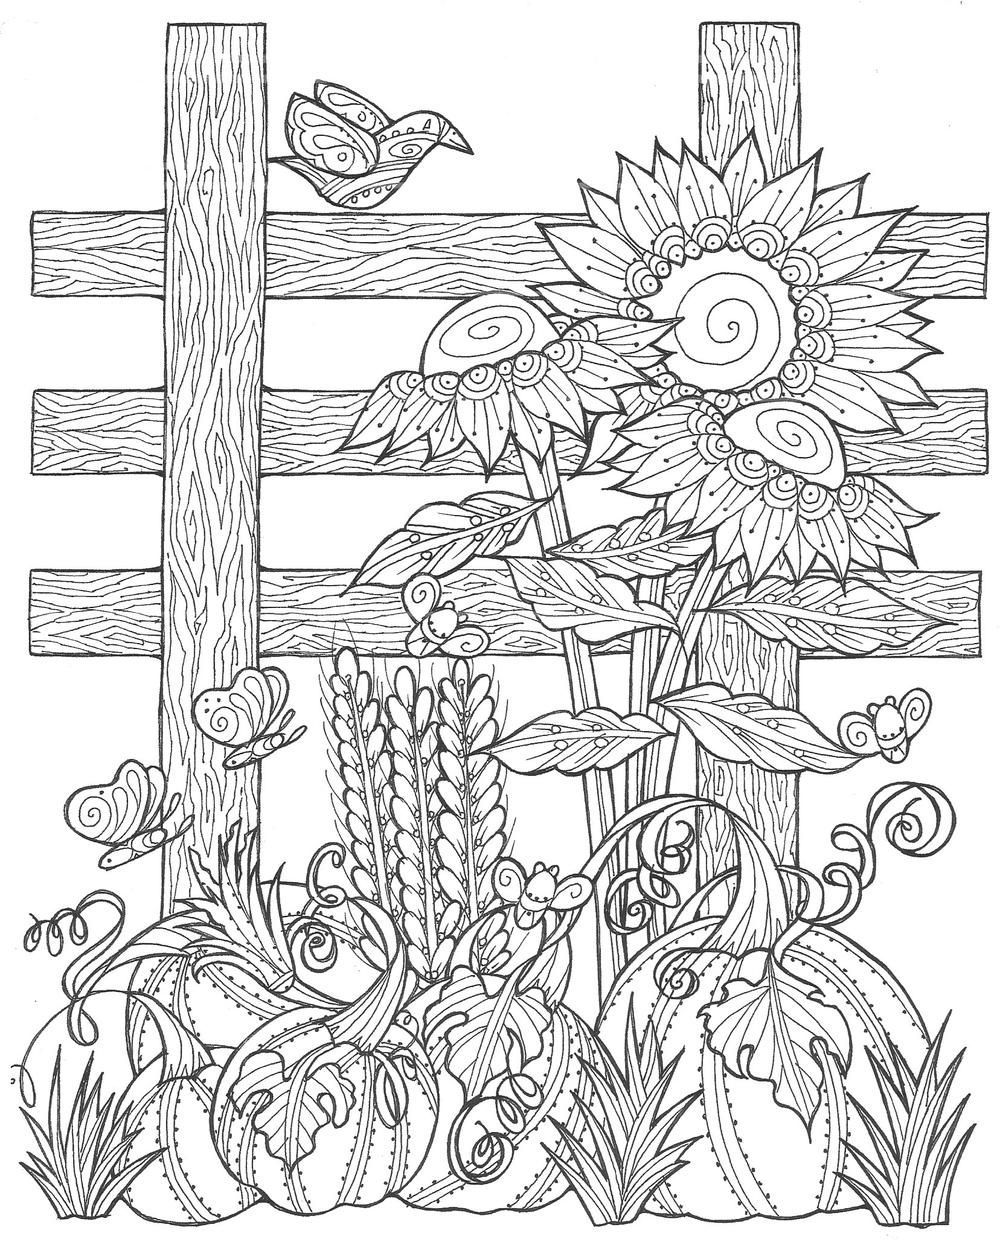 Sunflower Pumpkin Patch Coloring Page Sunflower Coloring Pages Fall Coloring Pages Pumpkin Coloring Pages